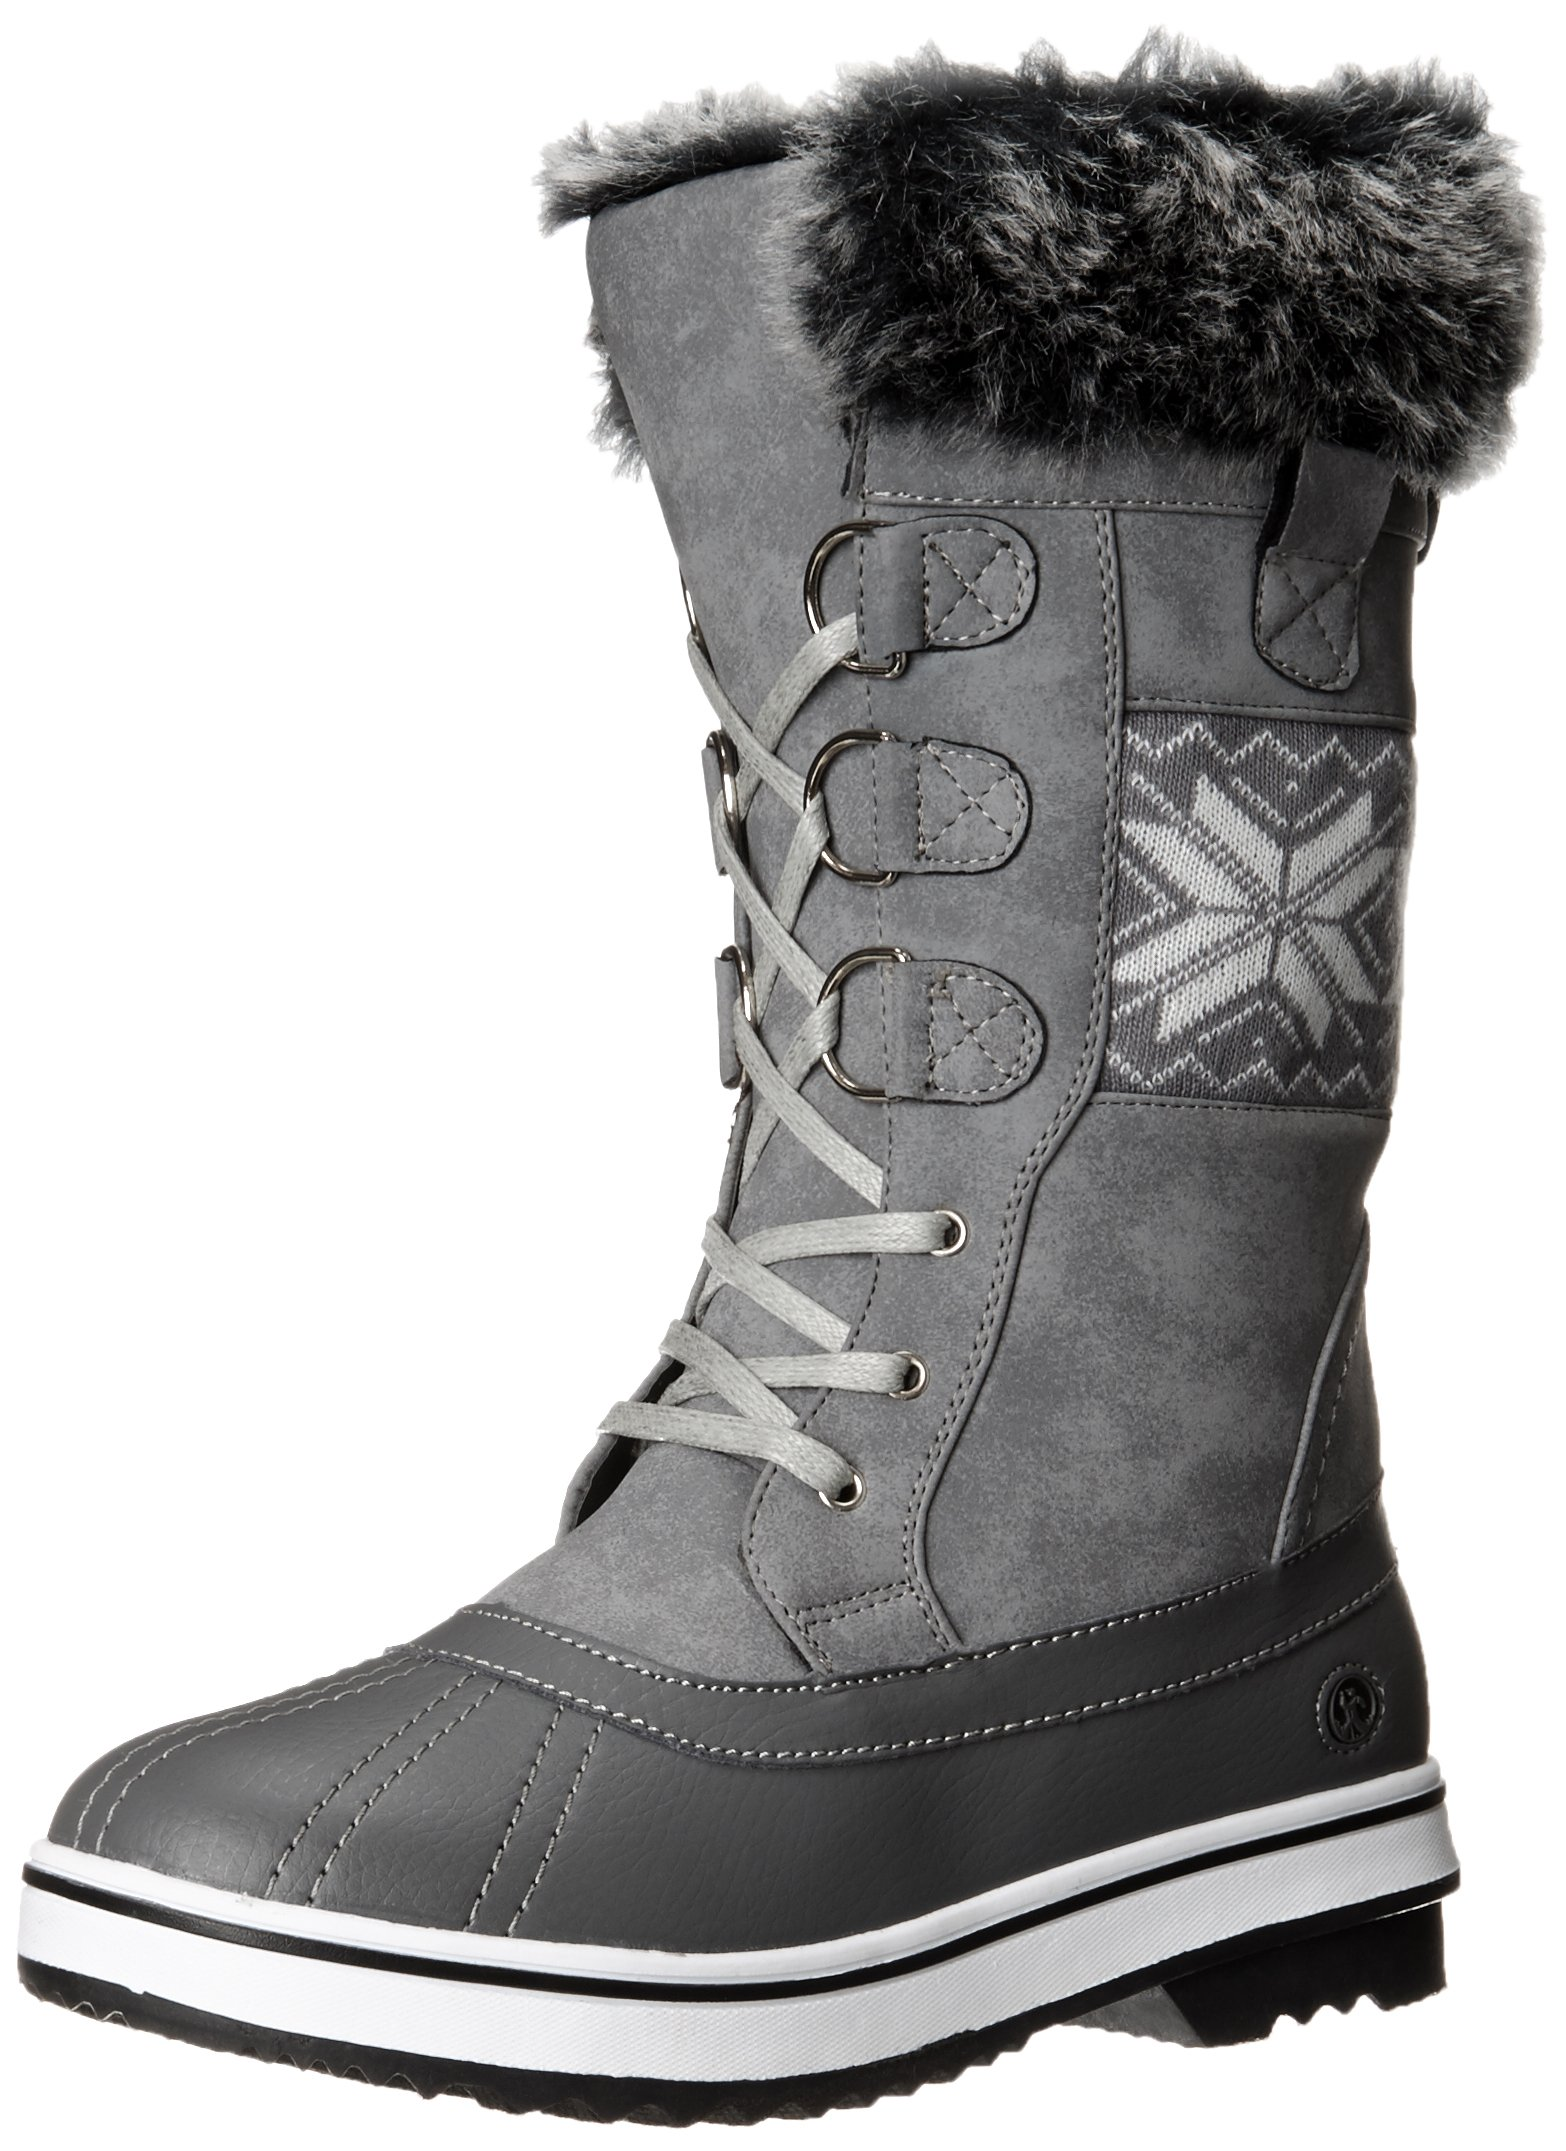 Northside Women's Bishop Fashion Boot